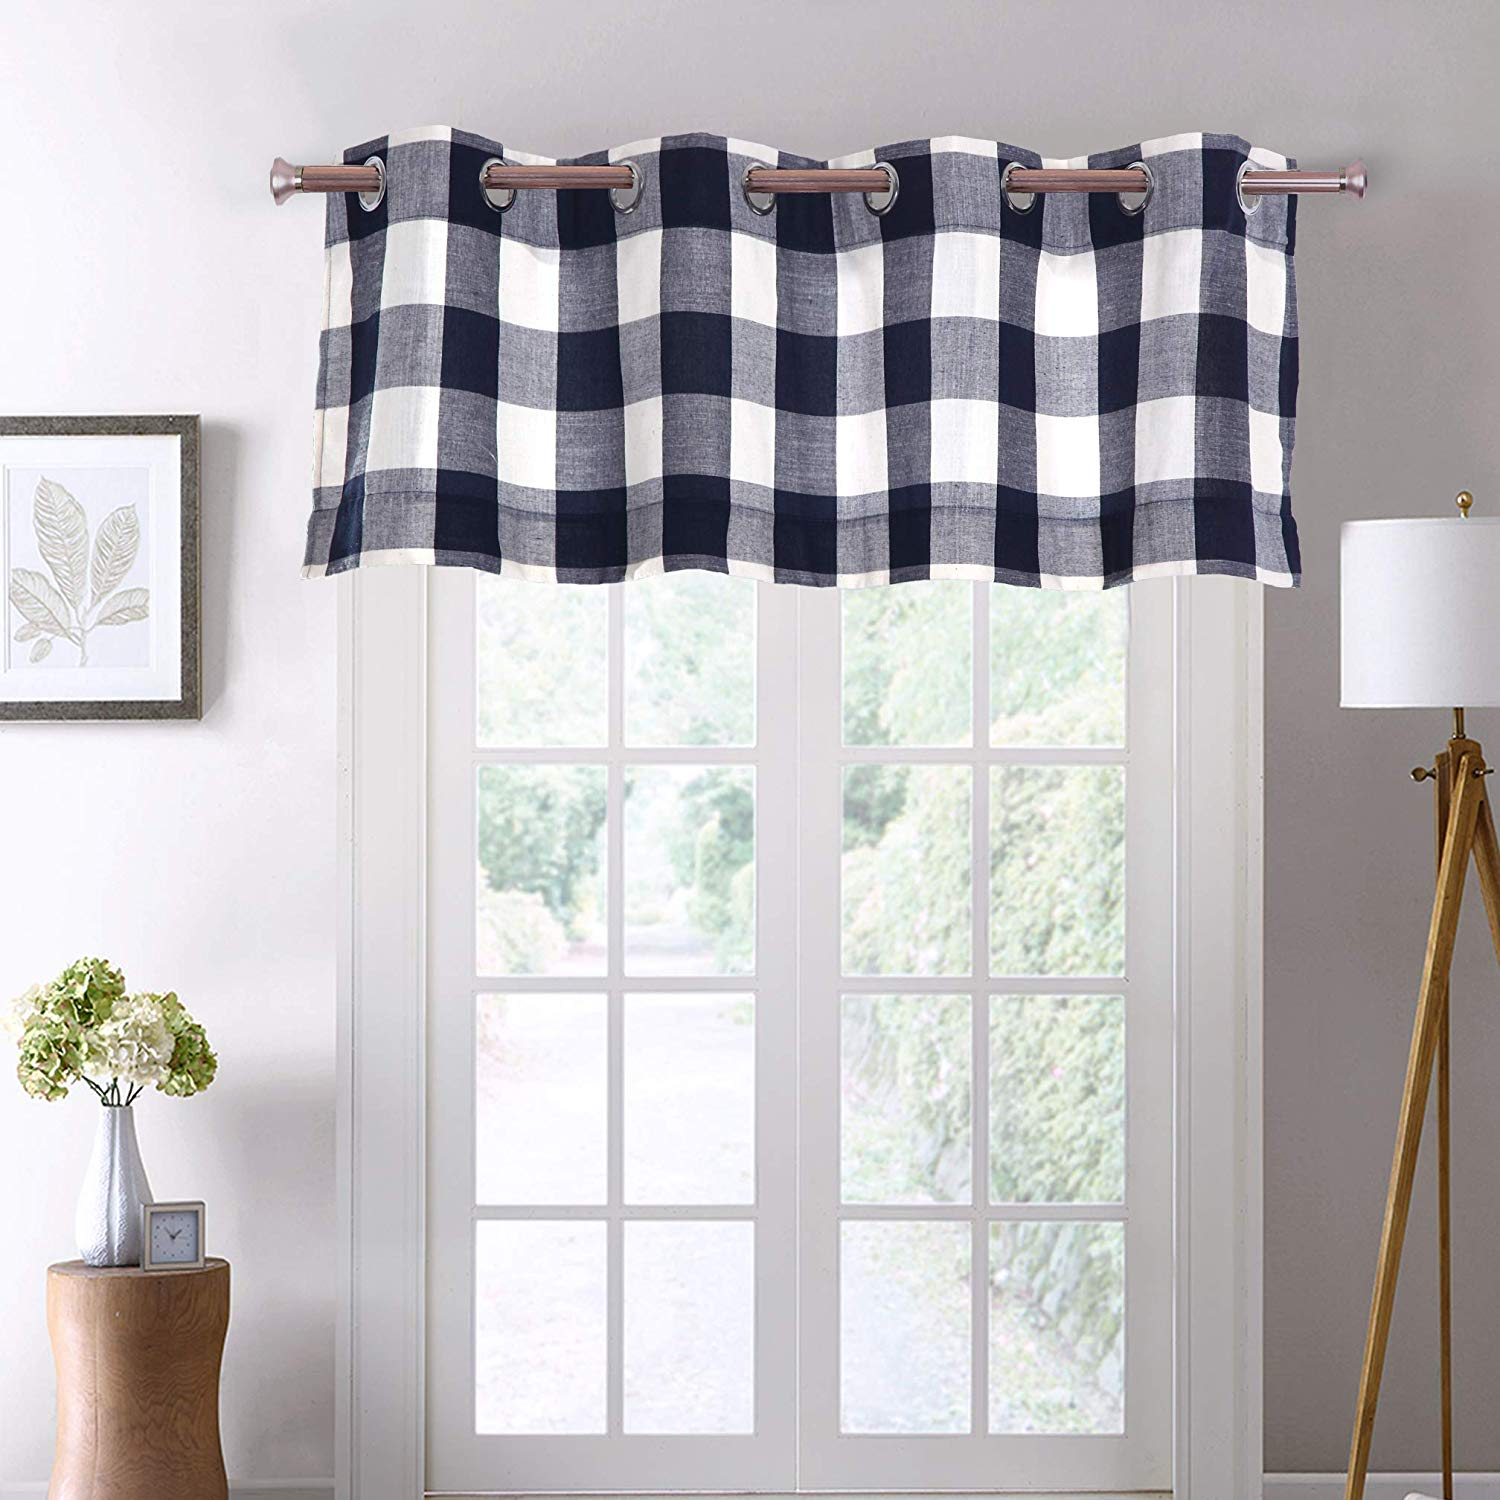 "Decotex 1 Piece Plaid Courtyard Buffalo Checkered Grommet Top Window Curtain Valance (1 Valance 53"" X 18"", Navy Blue/beige) – Walmart Throughout Classic Navy Cotton Blend Buffalo Check Kitchen Curtain Sets (View 18 of 20)"